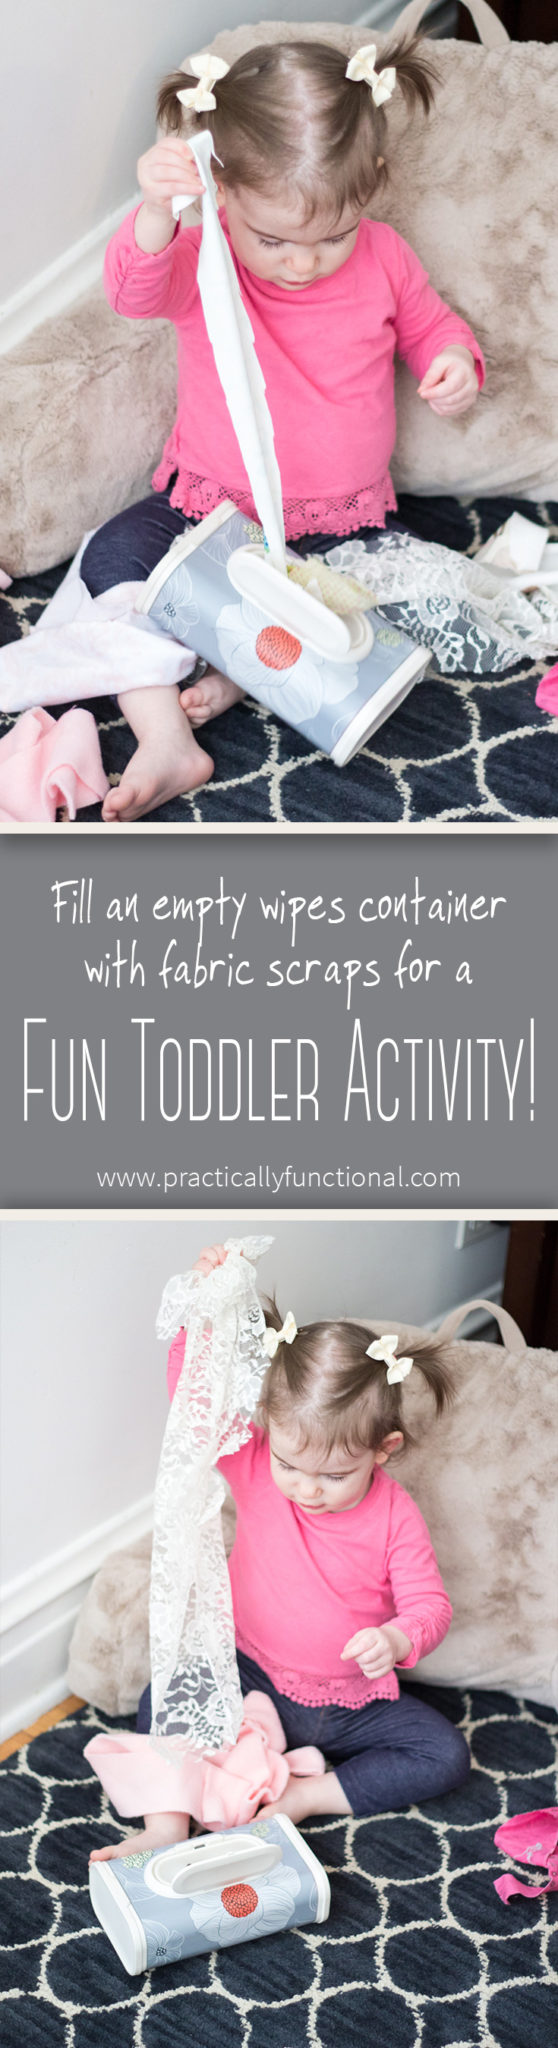 Turn An Empty Wipes Container Into A Fun Toddler Activity